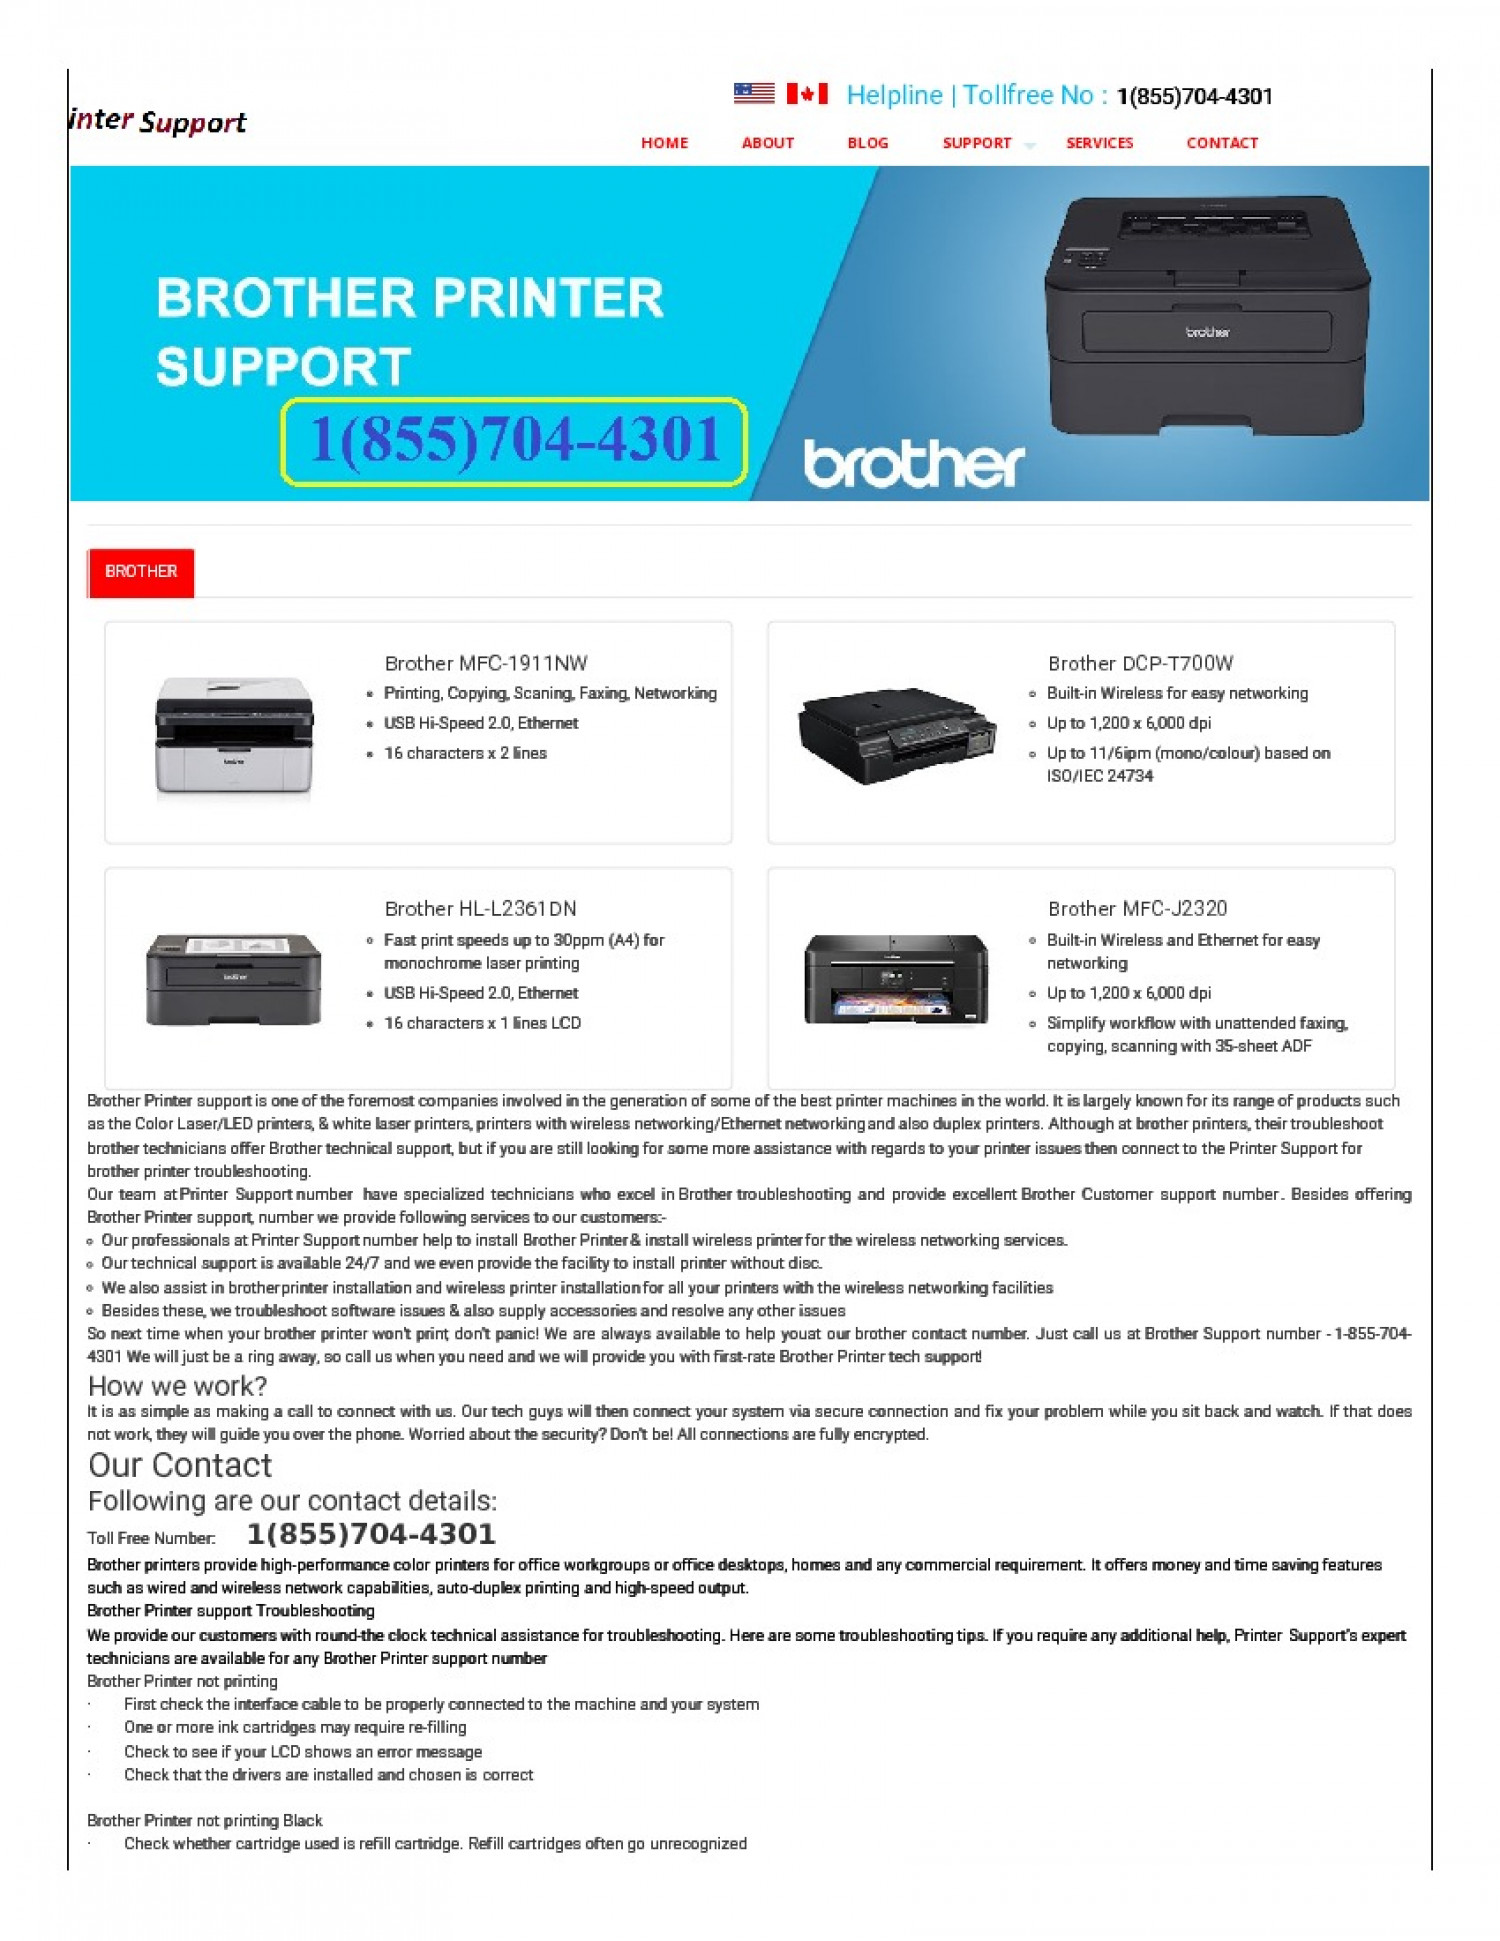 Brother Printer Support Phone Number+1(855)704-4301 Infographic